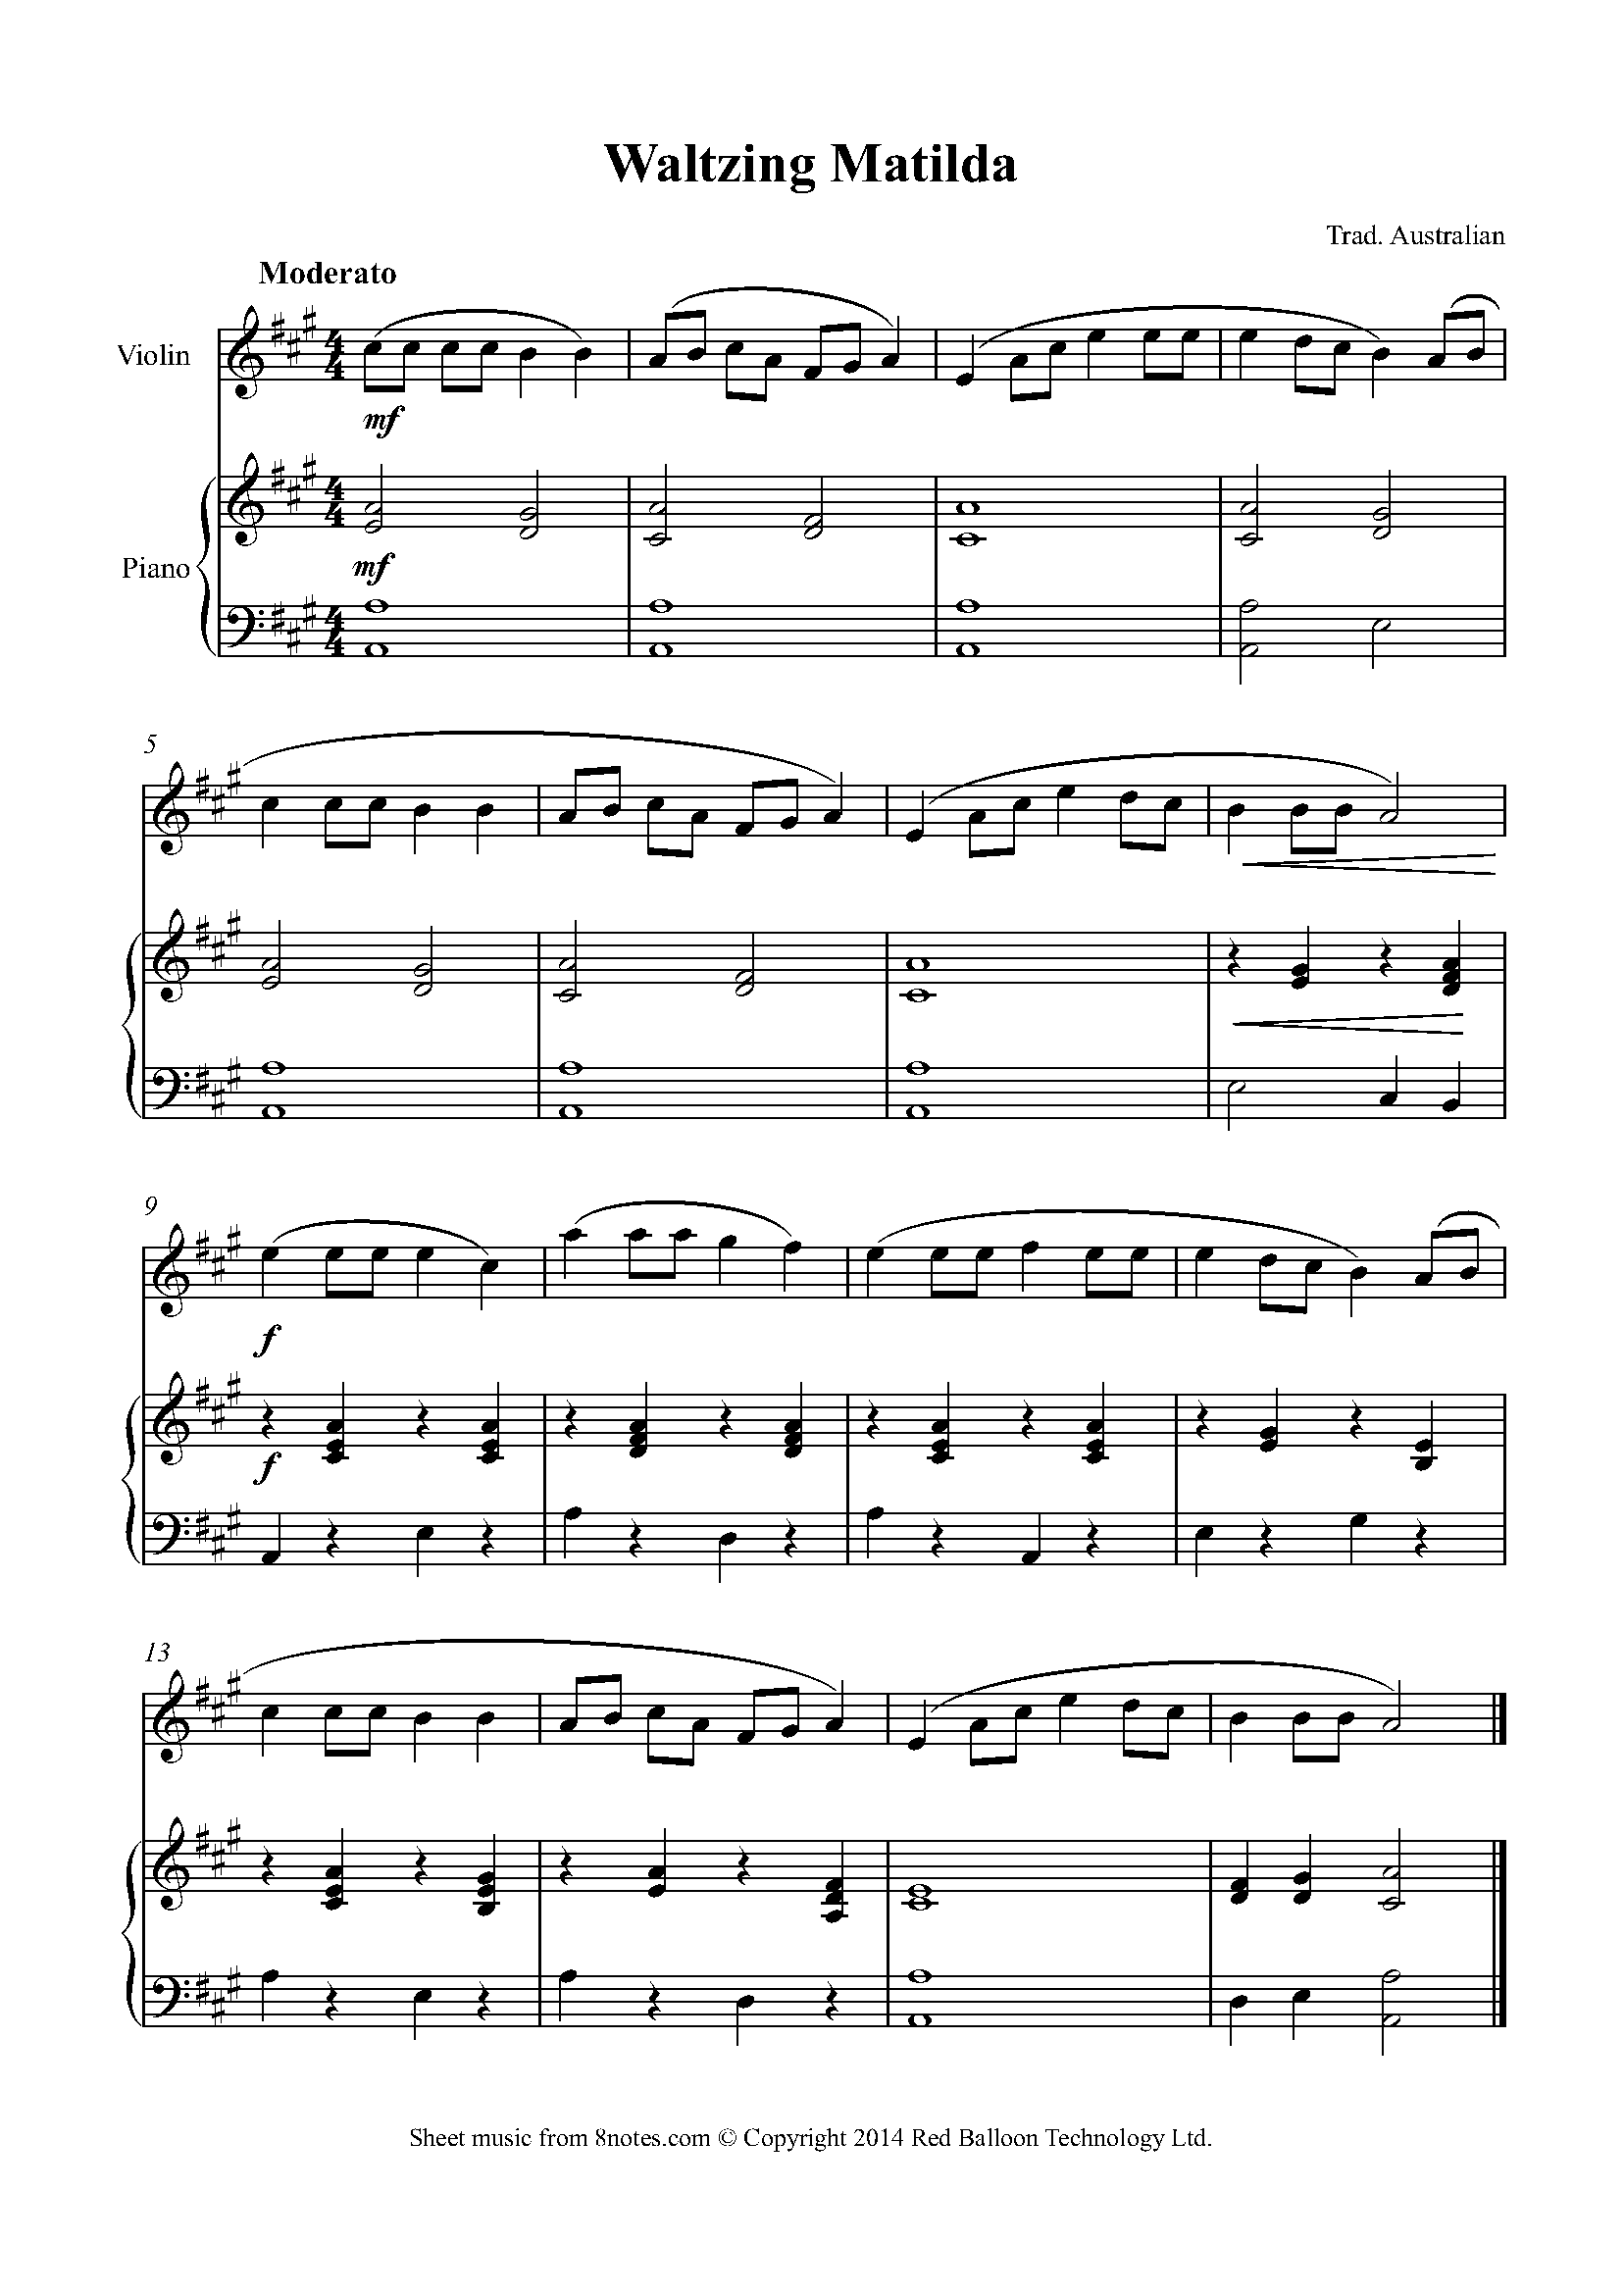 Waltzing Matilda Sheet Music For Violin